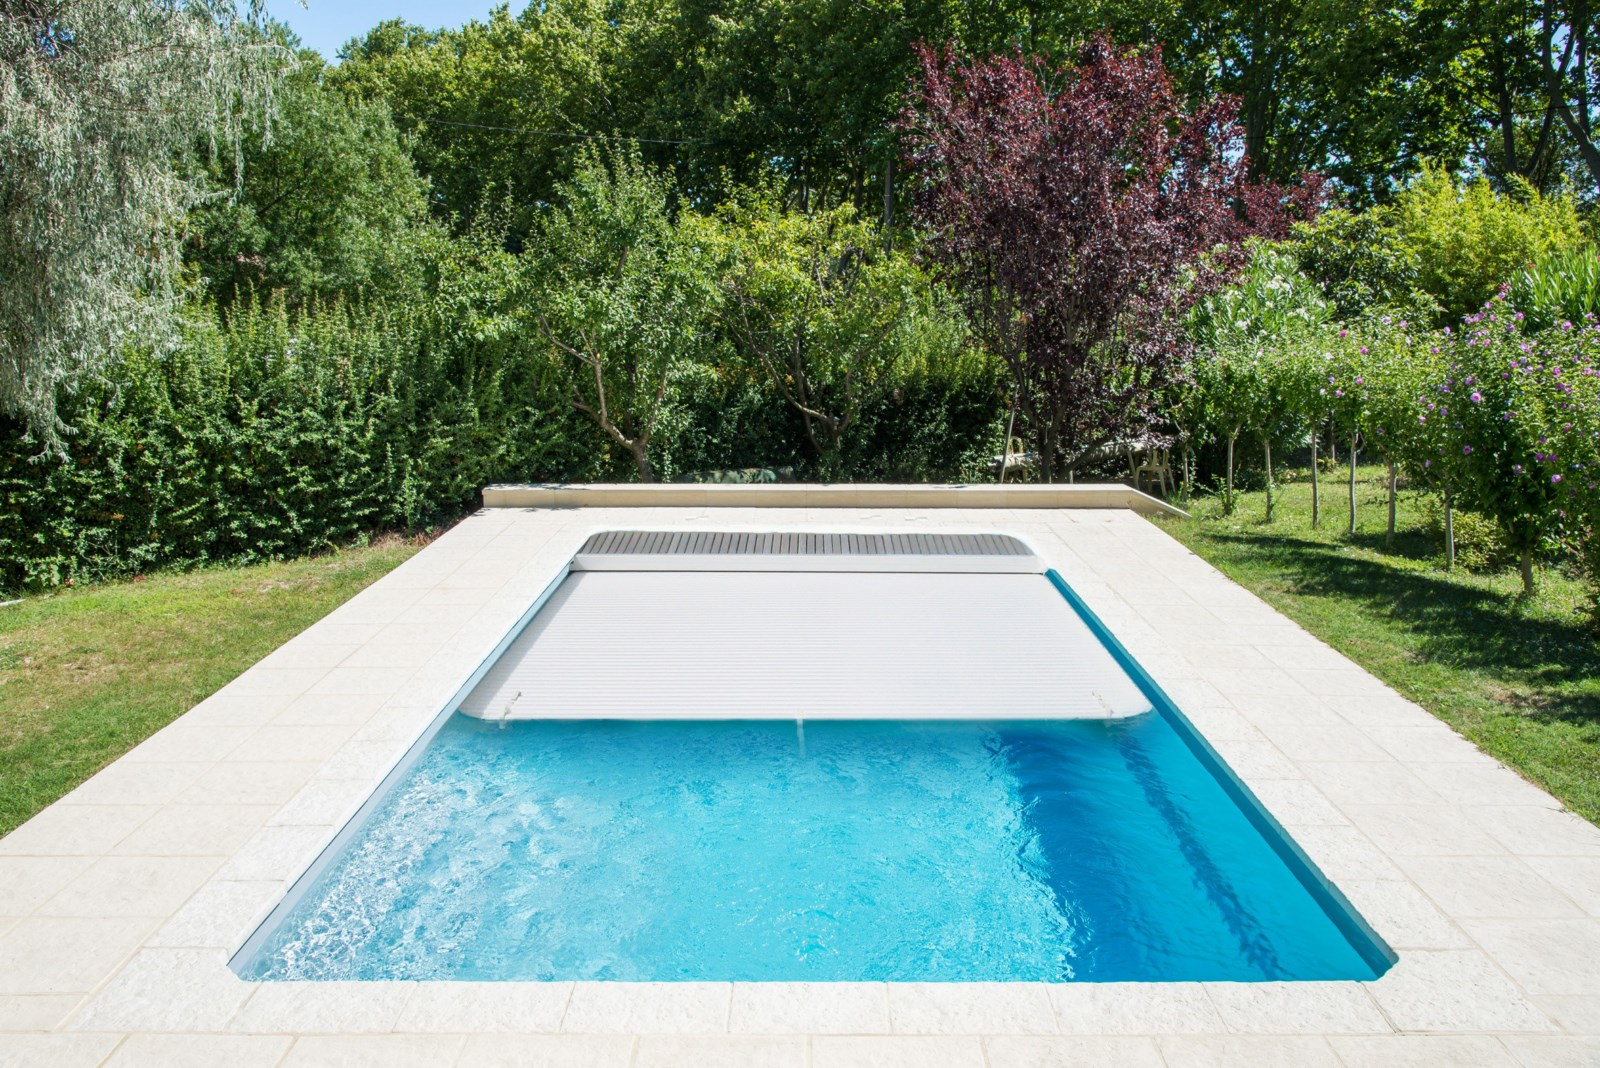 Piscine coque polyester rectangulaire mod le f ro avec for Piscine en polyester